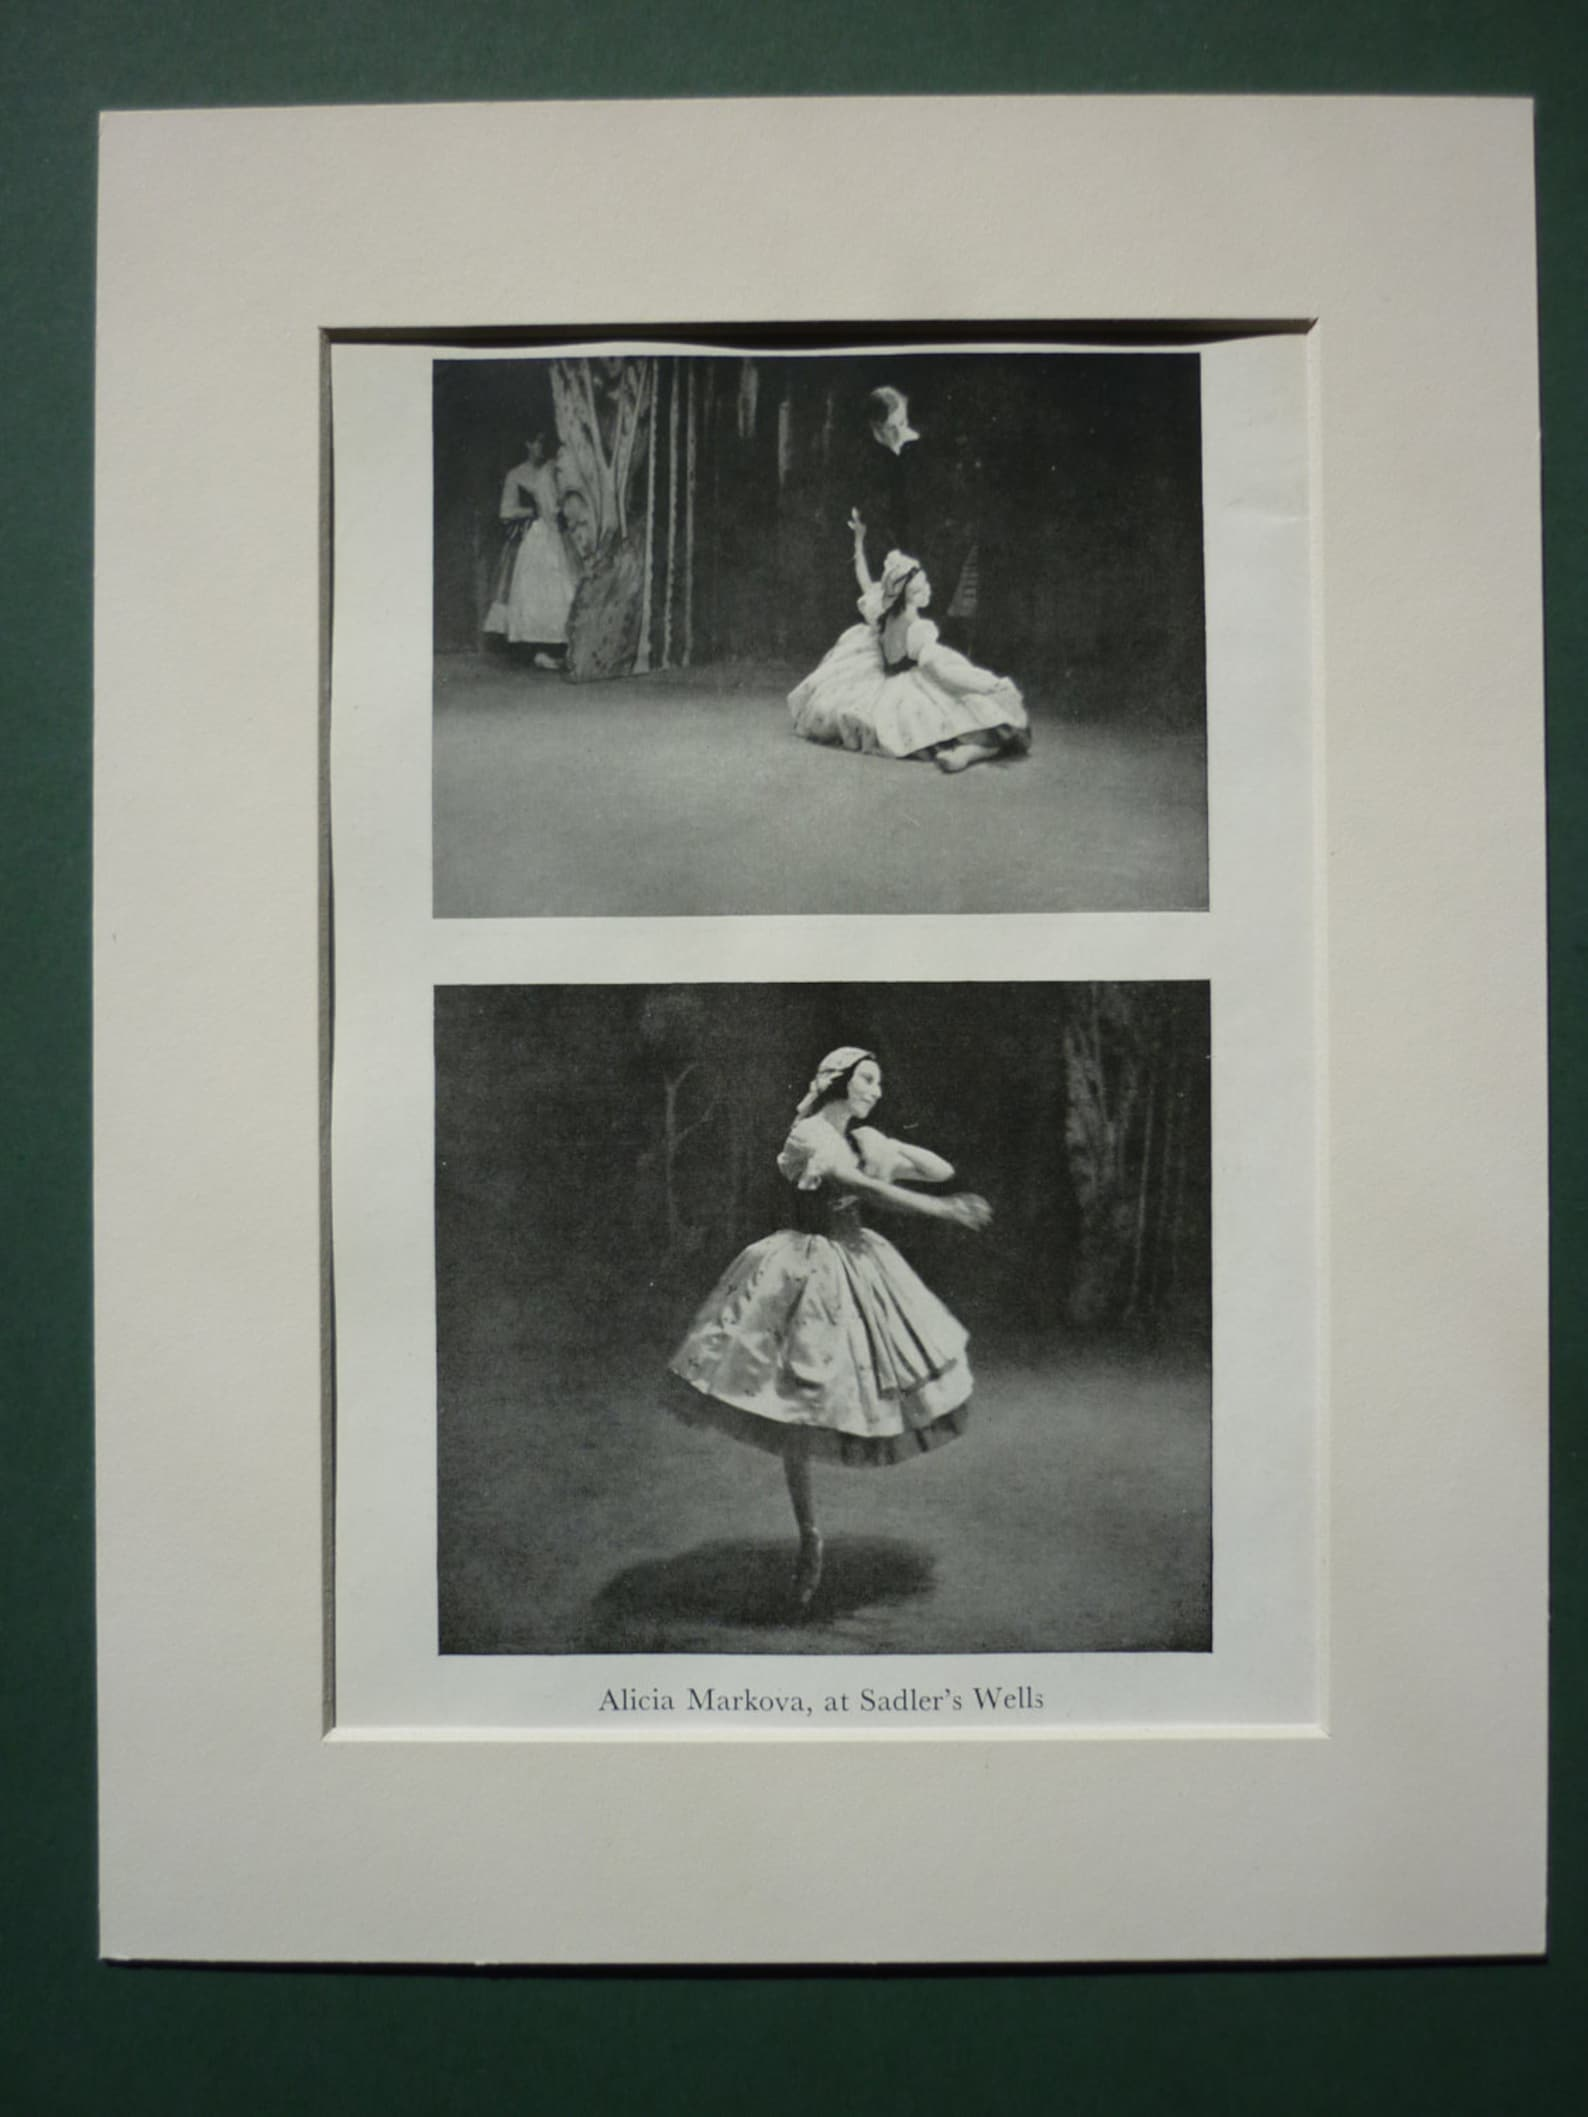 vintage 1946 ballet dancer print - ballerina - sadlers wells theatre - ballet studio - technique - alicia markova - dance - danc